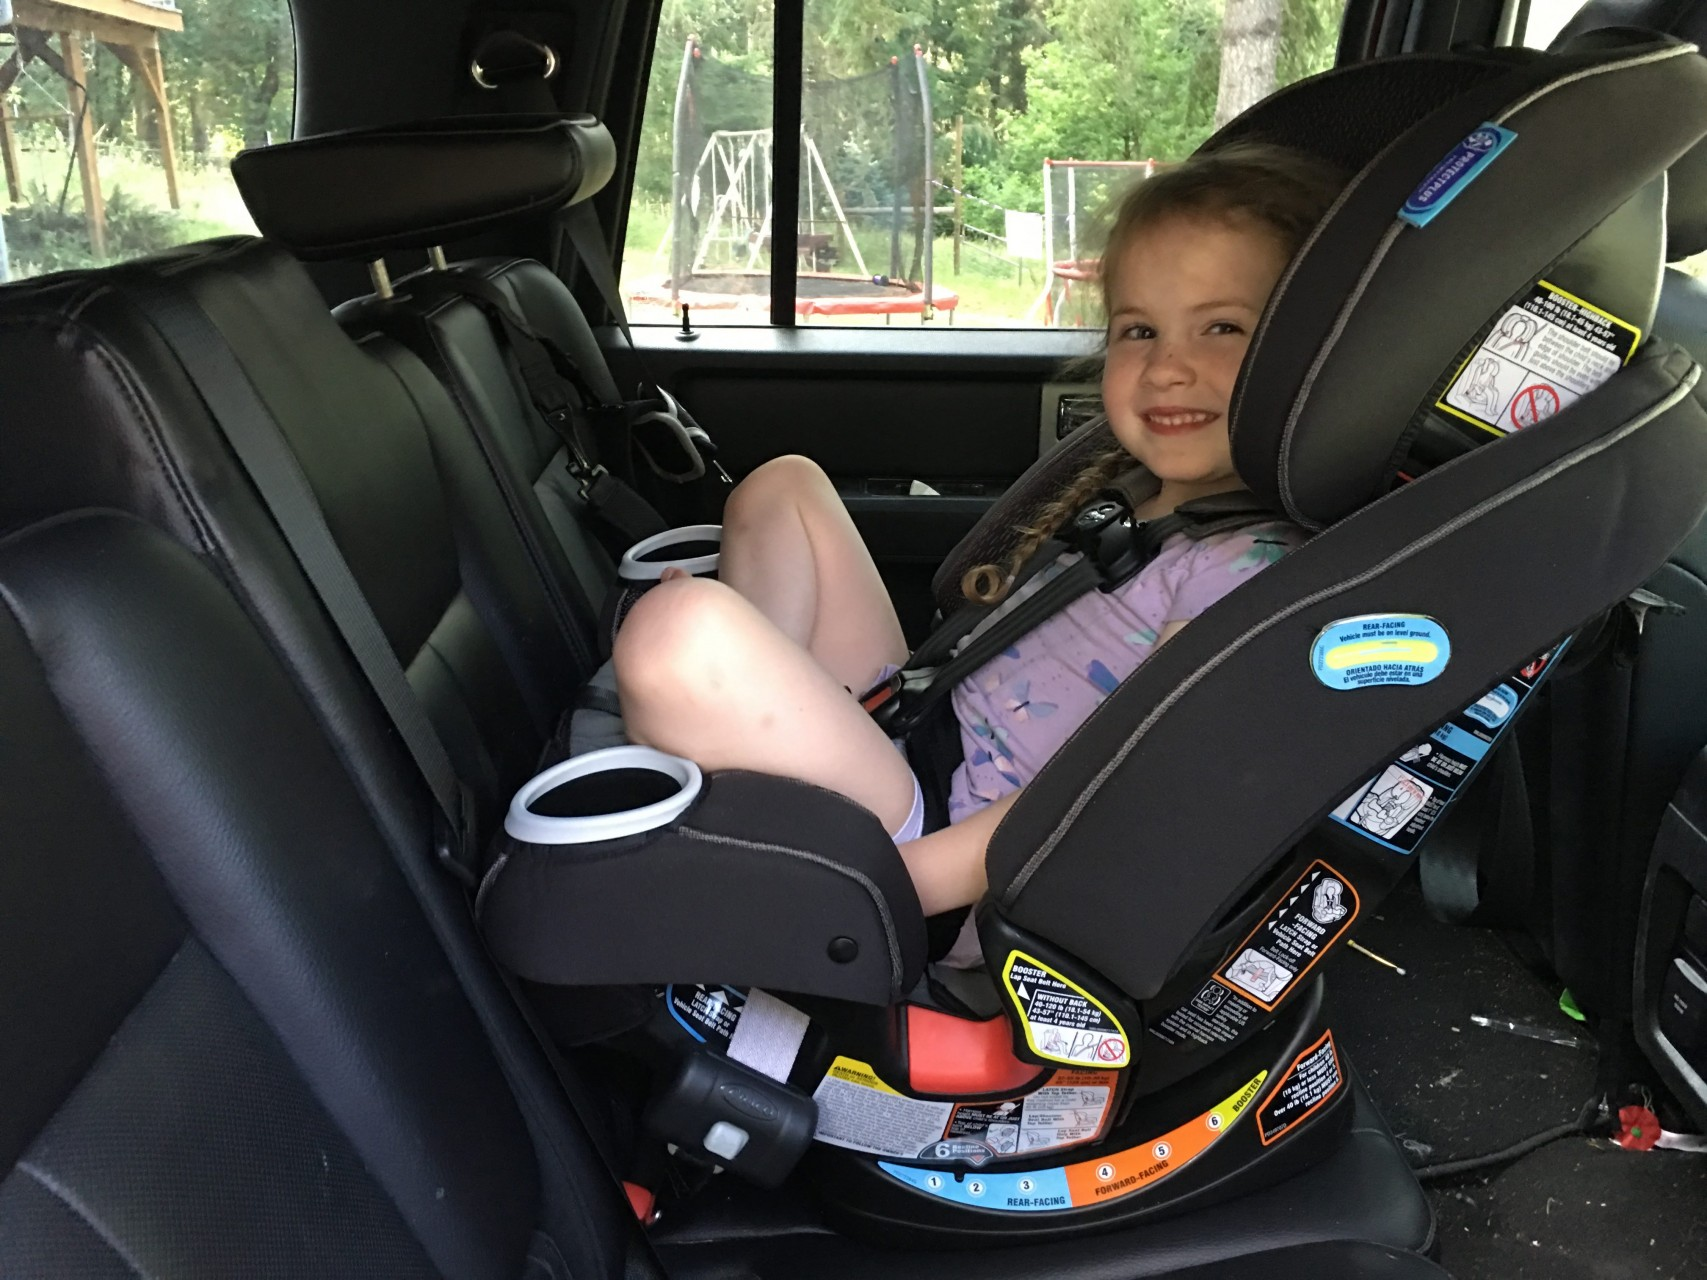 Rear Facing Car Seat Age 4 Carseatblog The Most Trusted Source For Car Seat Reviews